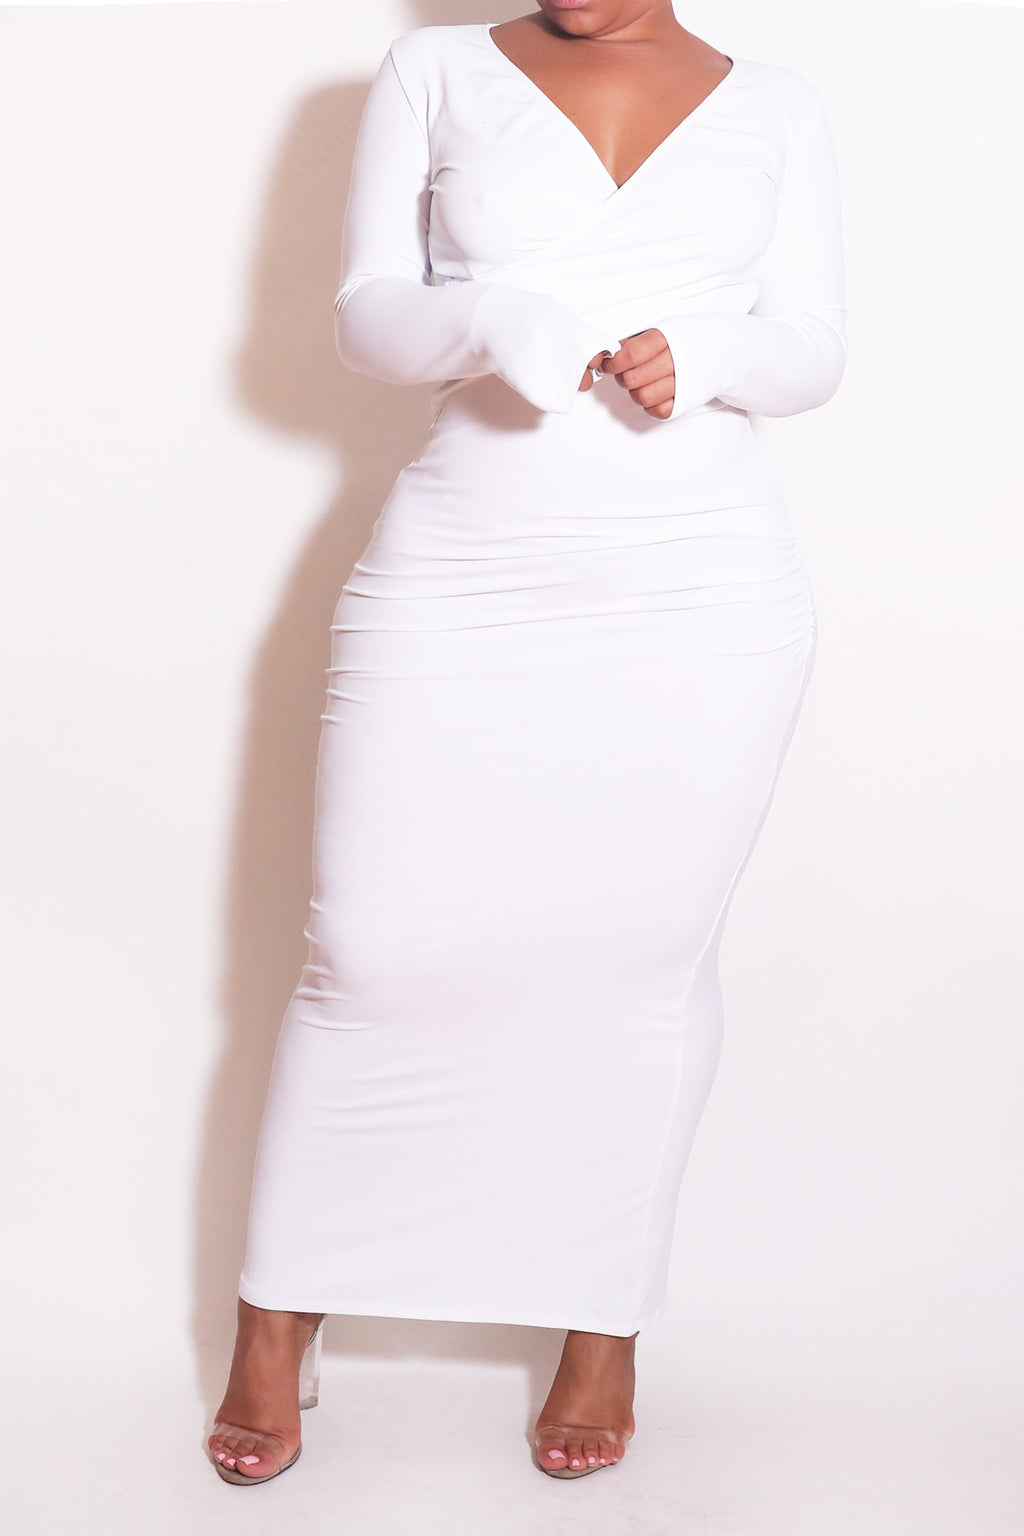 The Wrap Bodycon Maxi Dress in White - Babes And Felines | Specializing in Fashionable Staple Pieces for Every Shape and Size